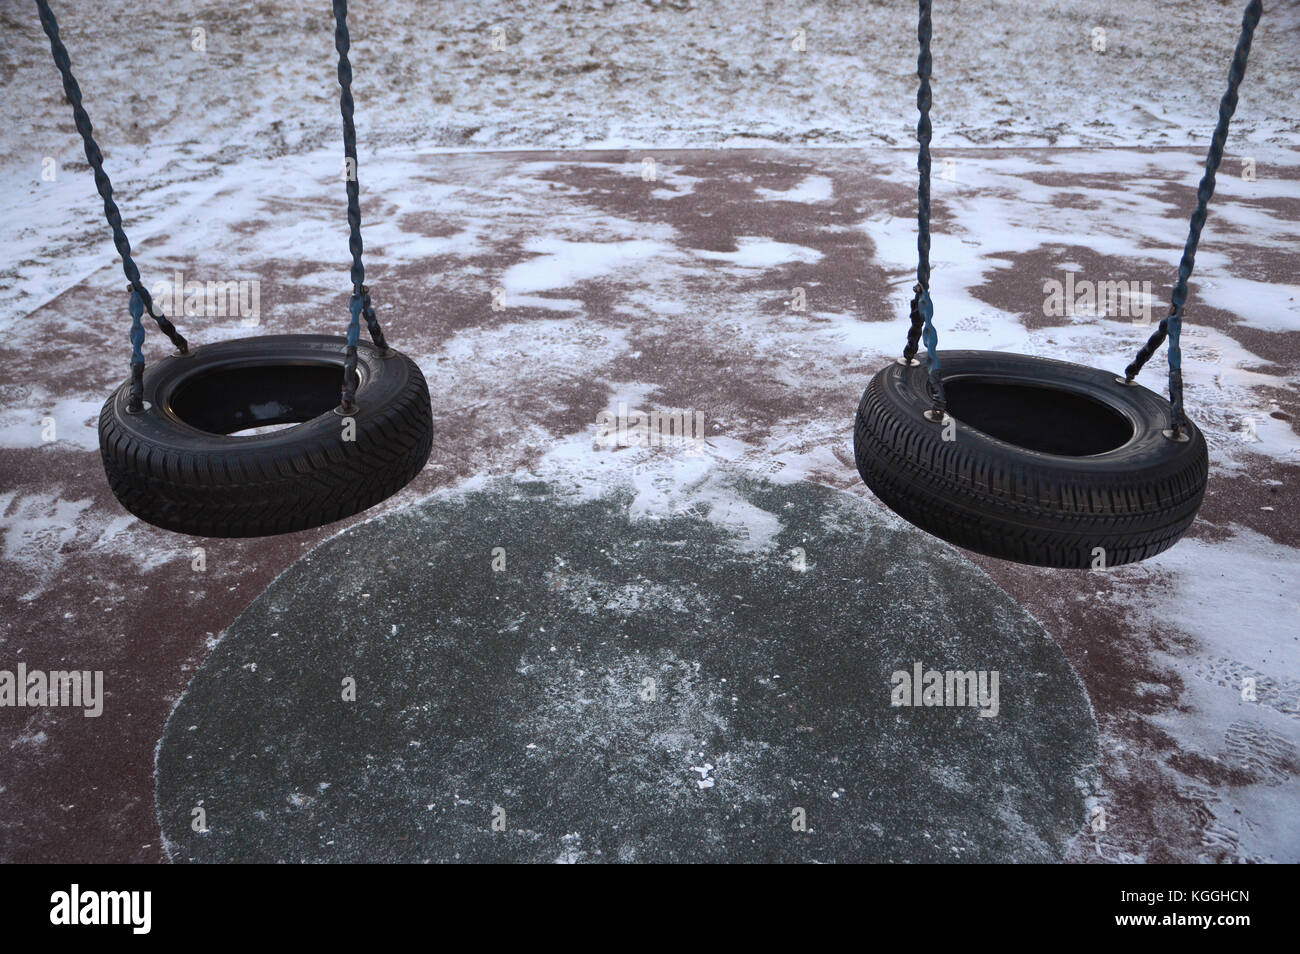 A Tire Swing Set On A Playground Stock Photo 165092725 Alamy